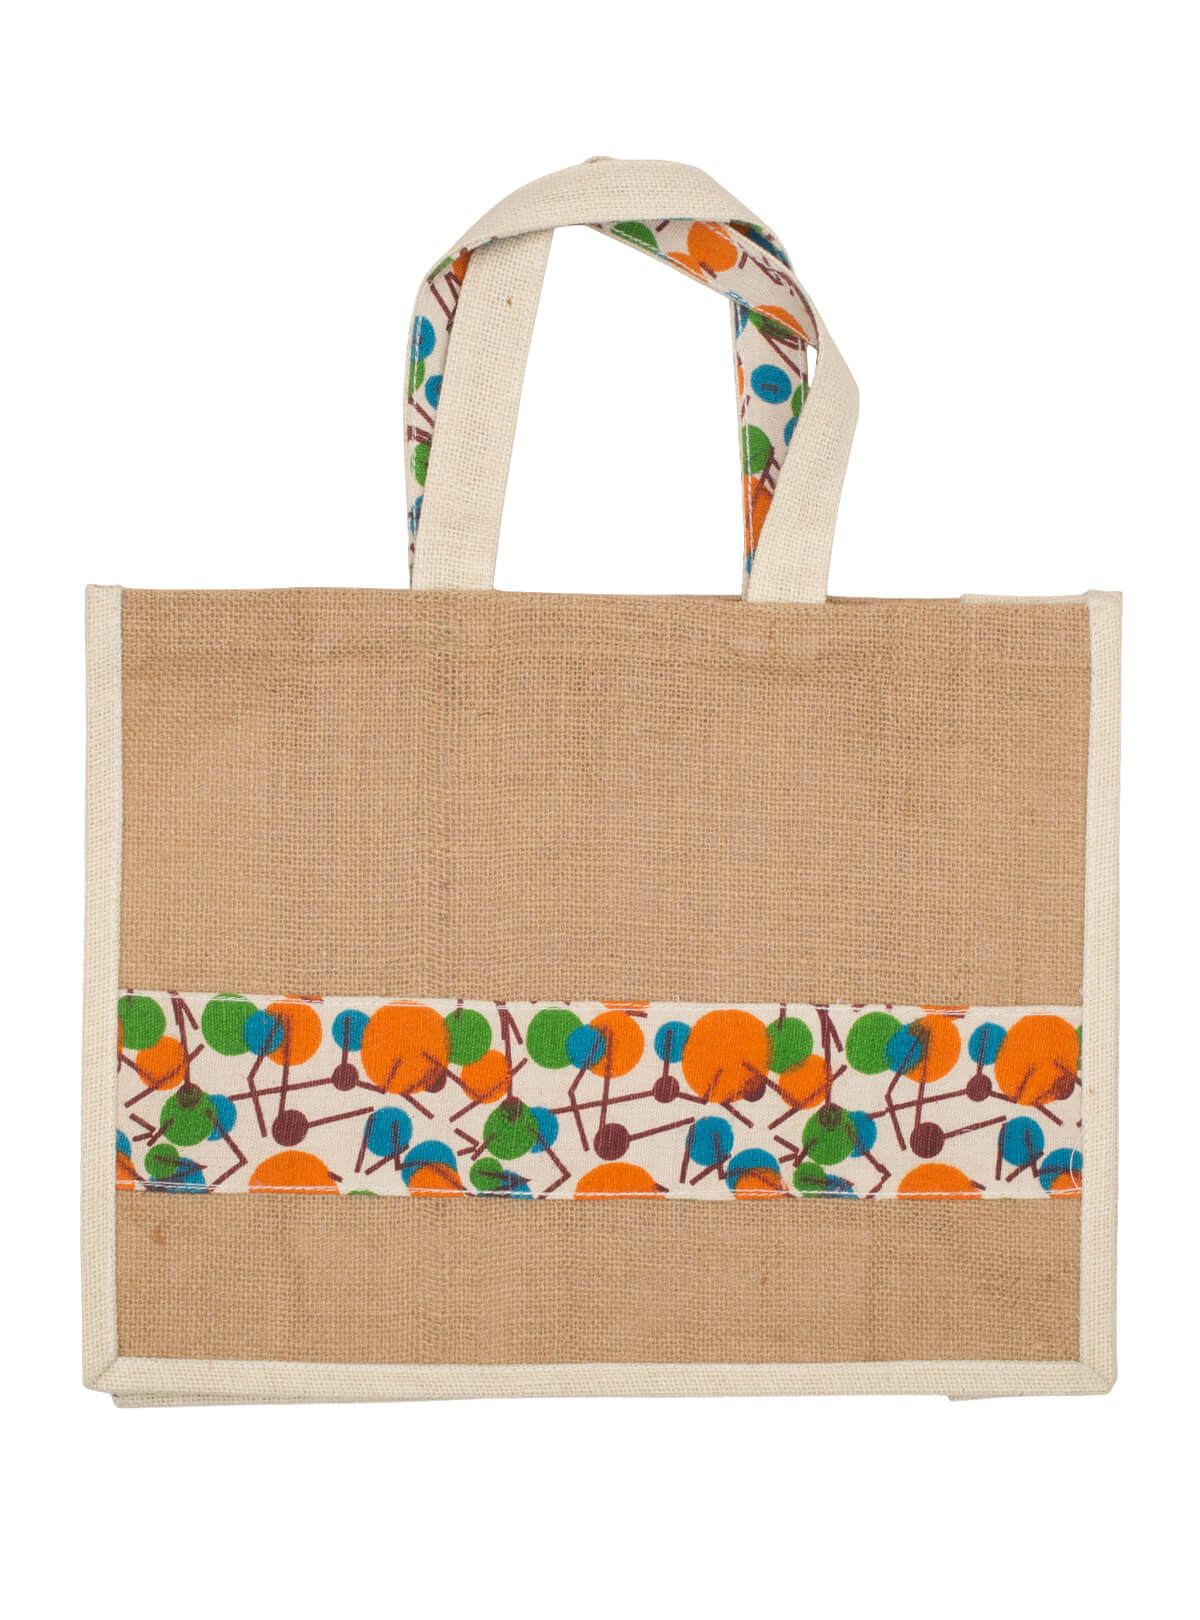 Eco-Friendly Heritage Green Natural Jute Plane Woven Reusable Carry  Bag